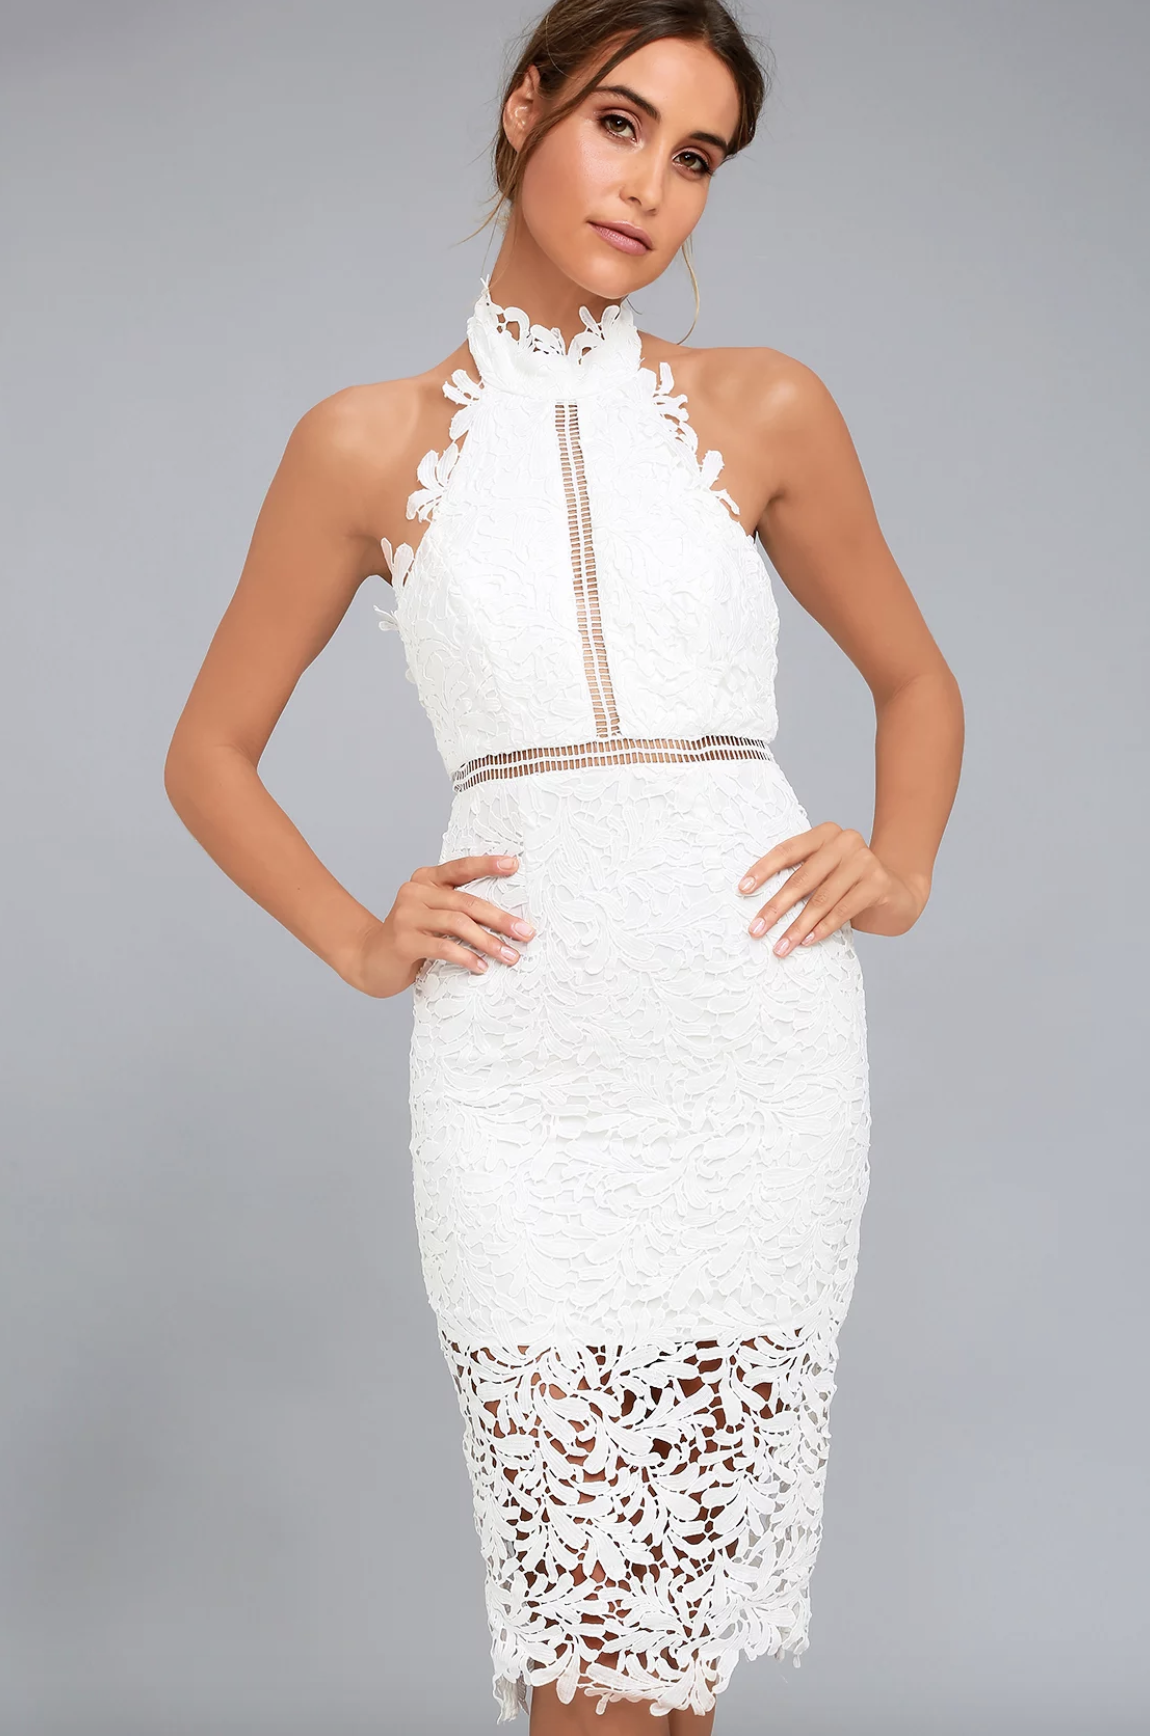 DIVINE DESTINY WHITE LACE MIDI DRESS   Cocktail dress, White dress, lace dress, nude and lace, bachelorette party dress, bridal shower dress, rehearsal dinner dress   www.thoughtfully-thrifted.com